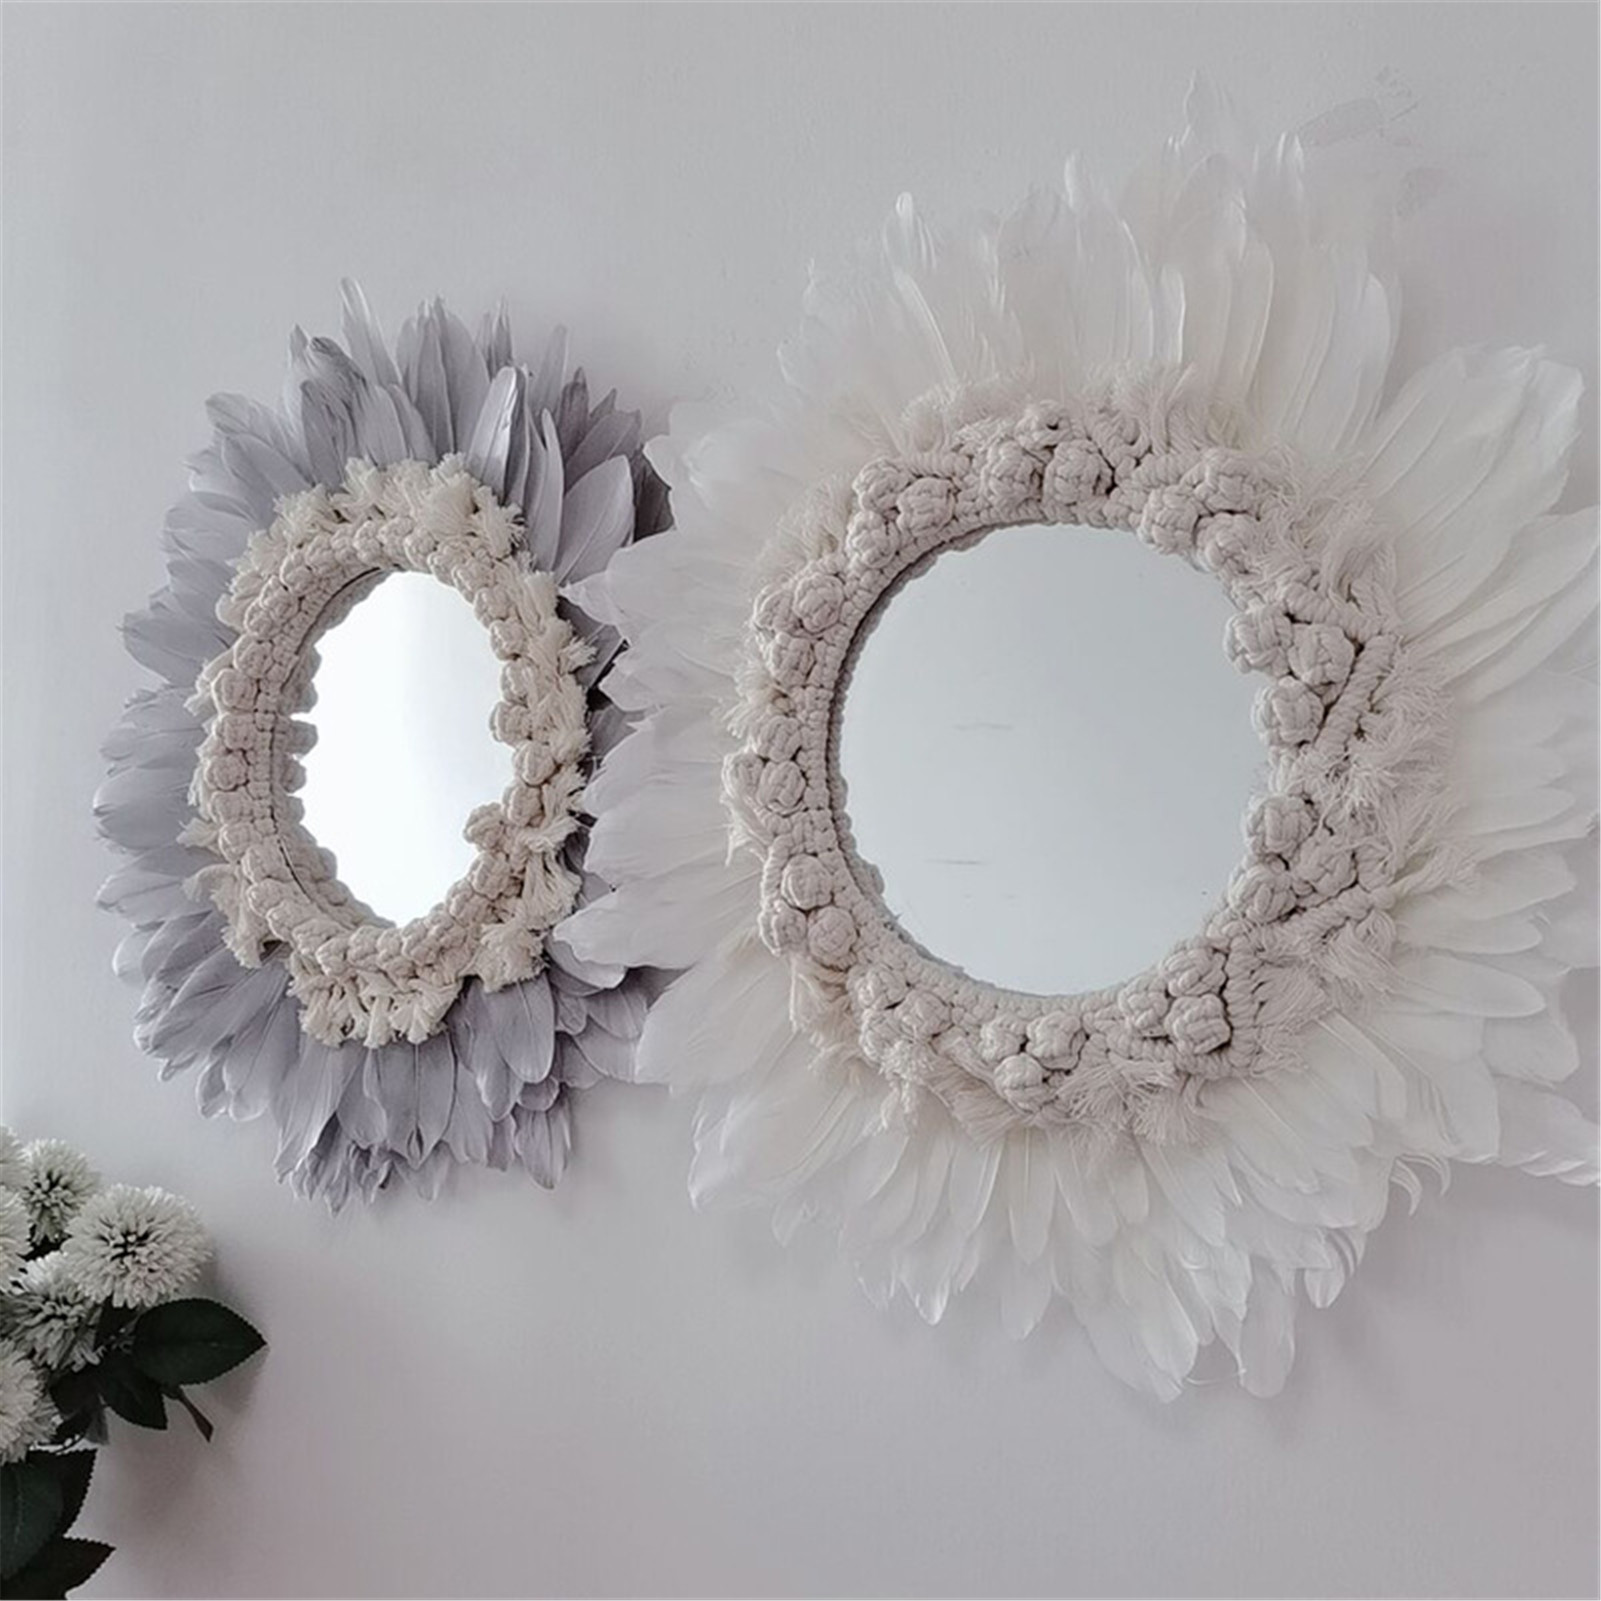 Hot Feather Mirror Hanging Decorations Children Room Handmade Wall Decor Home Pendant Mounted Hanging Wedding Party Home Decor